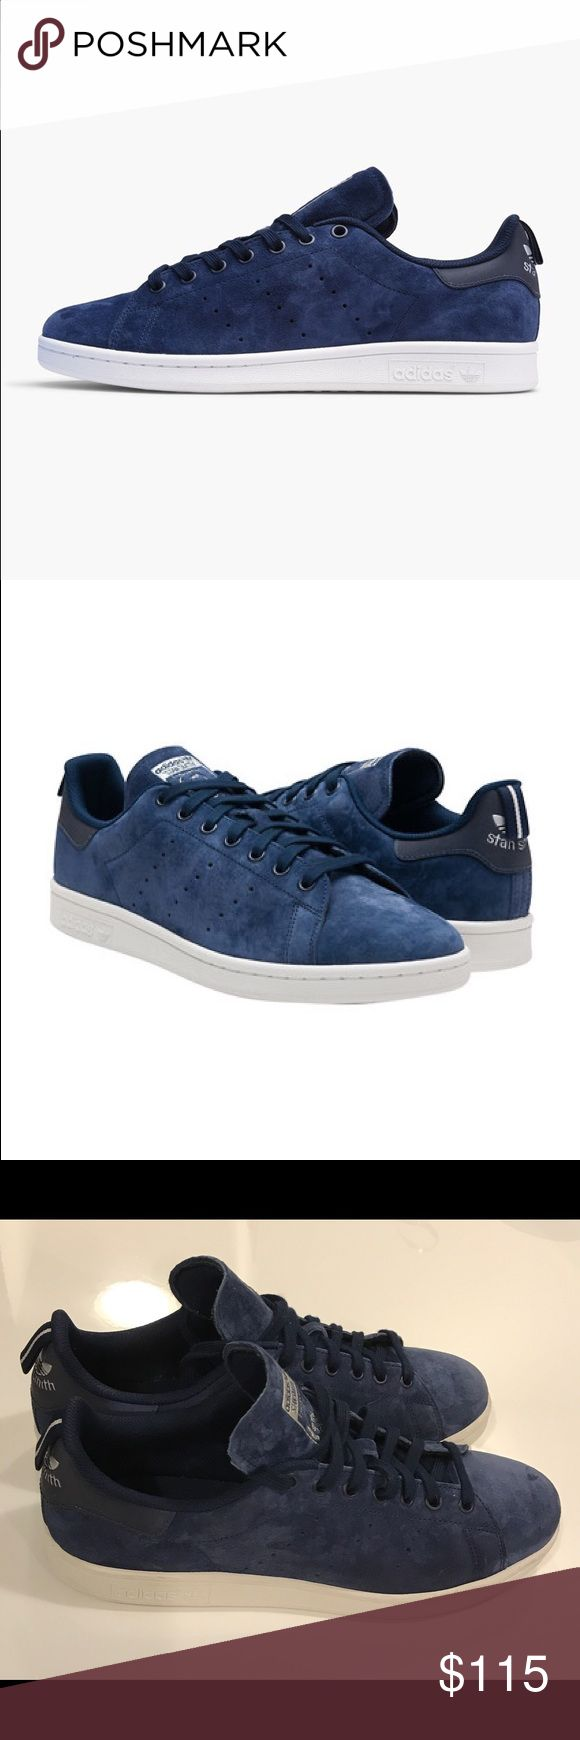 Adidas Original Stan Smith Navy Blue Suede. Excellent Condition!! Only worn handful of times! Adidas Original Stan Smith men's size US 10. Dark Navy Suede.     Like New! Adidas Shoes Athletic Shoes